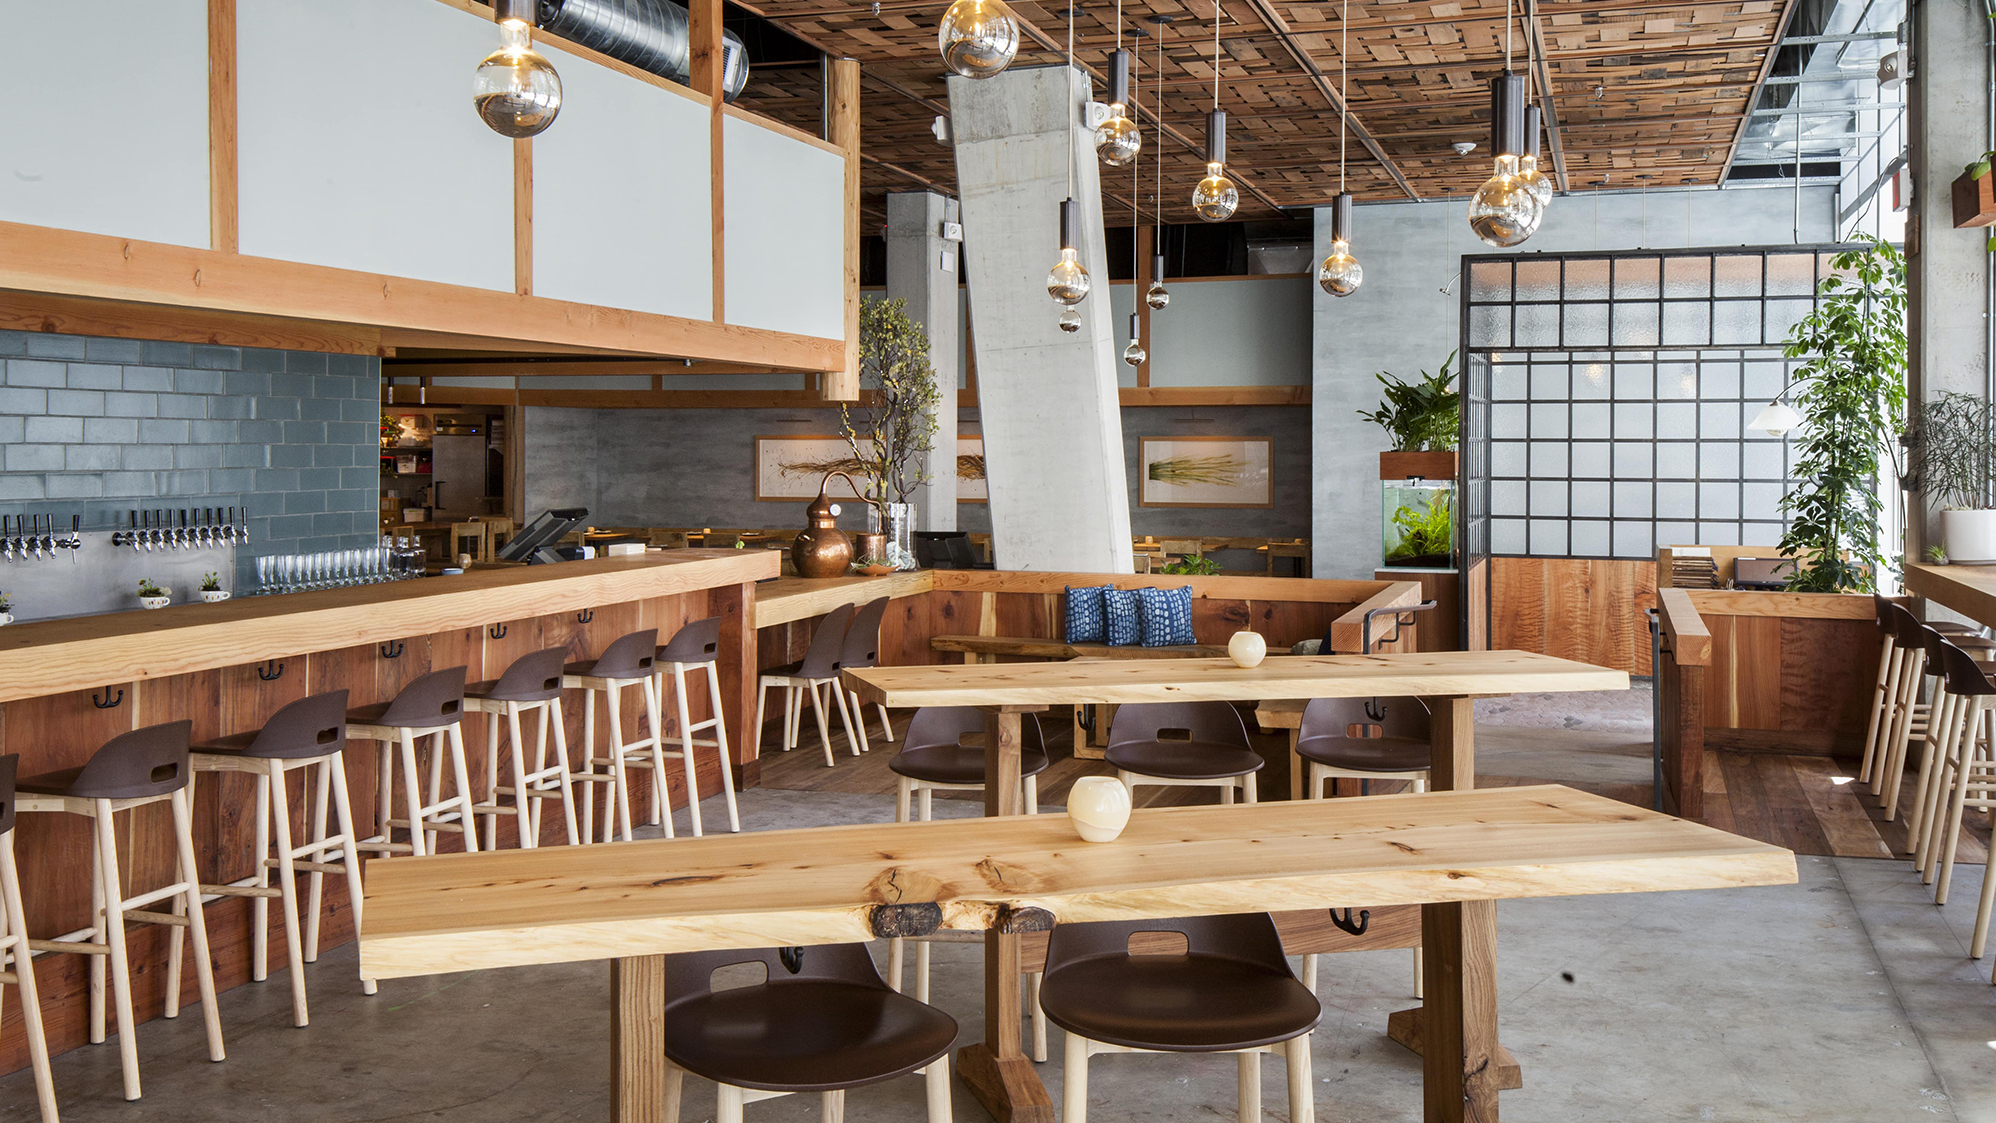 Why Does Every New Restaurant Look Like A Factory The Salt Npr